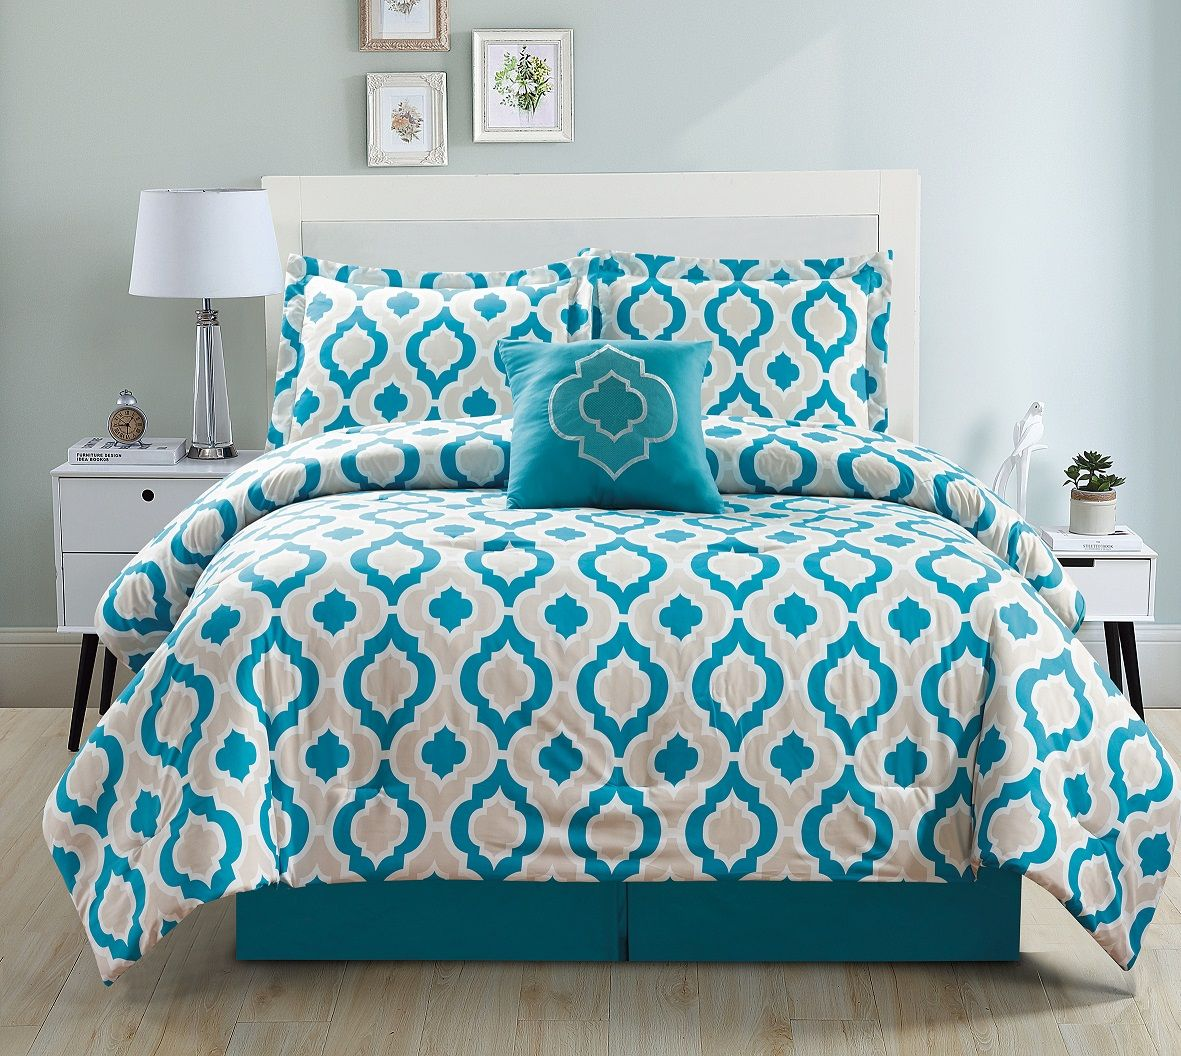 duvet colour modern stylish ekm teal cover p mix blue quality design asp bedding bed quilt